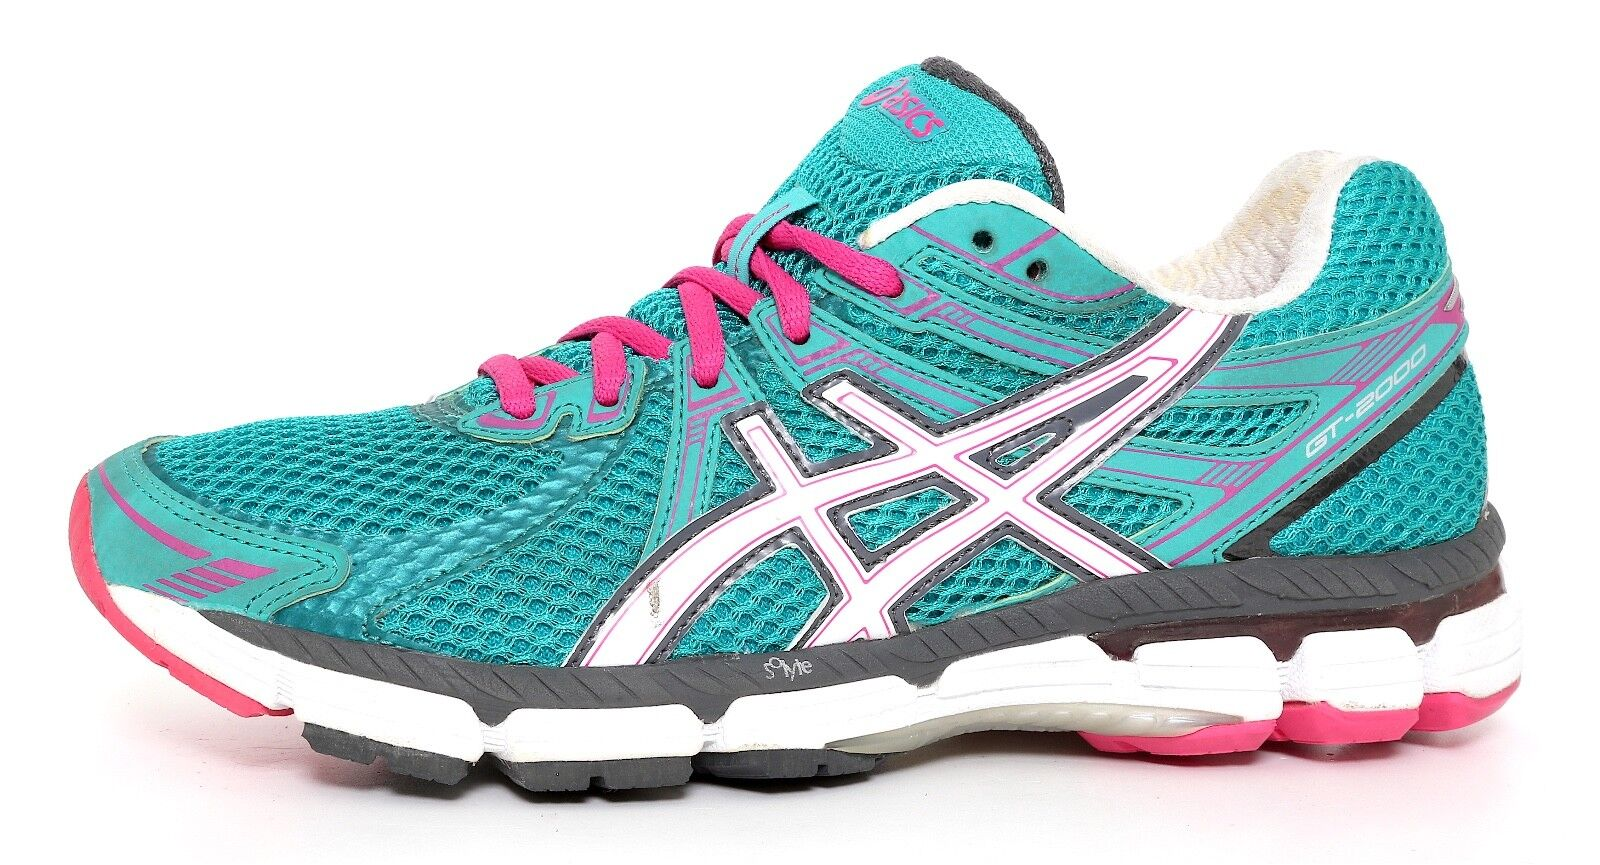 Asics GT 2000 Running Shoes Turquoise Donna Sz 7.5 5085